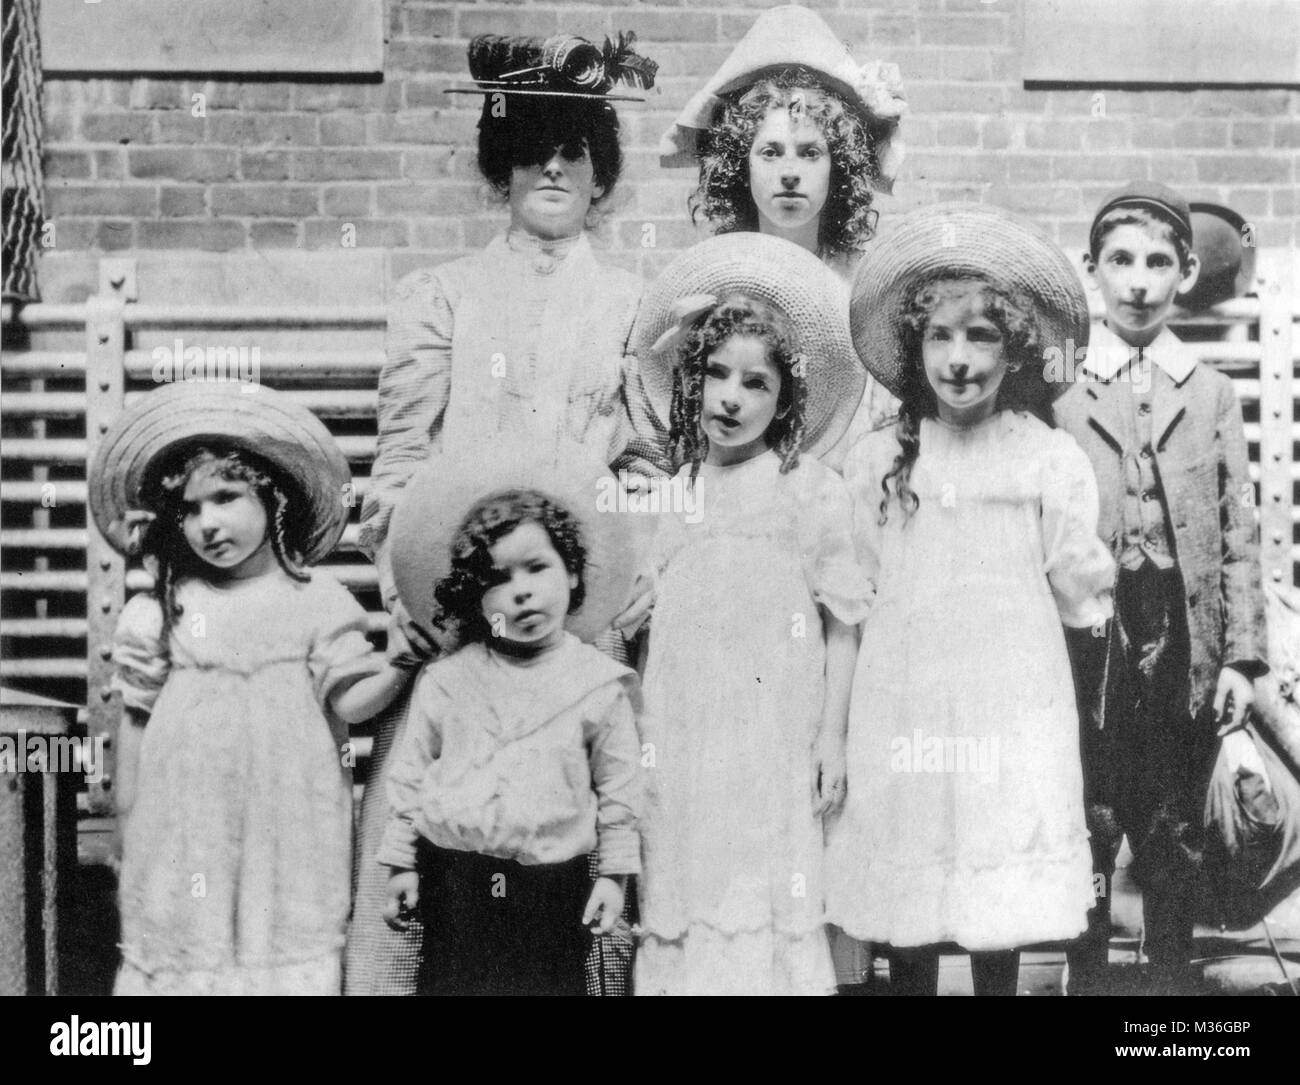 JEWISH IMMIGRANT FAMILY arrive on Ellis Island, New York, about 1905 - Stock Image